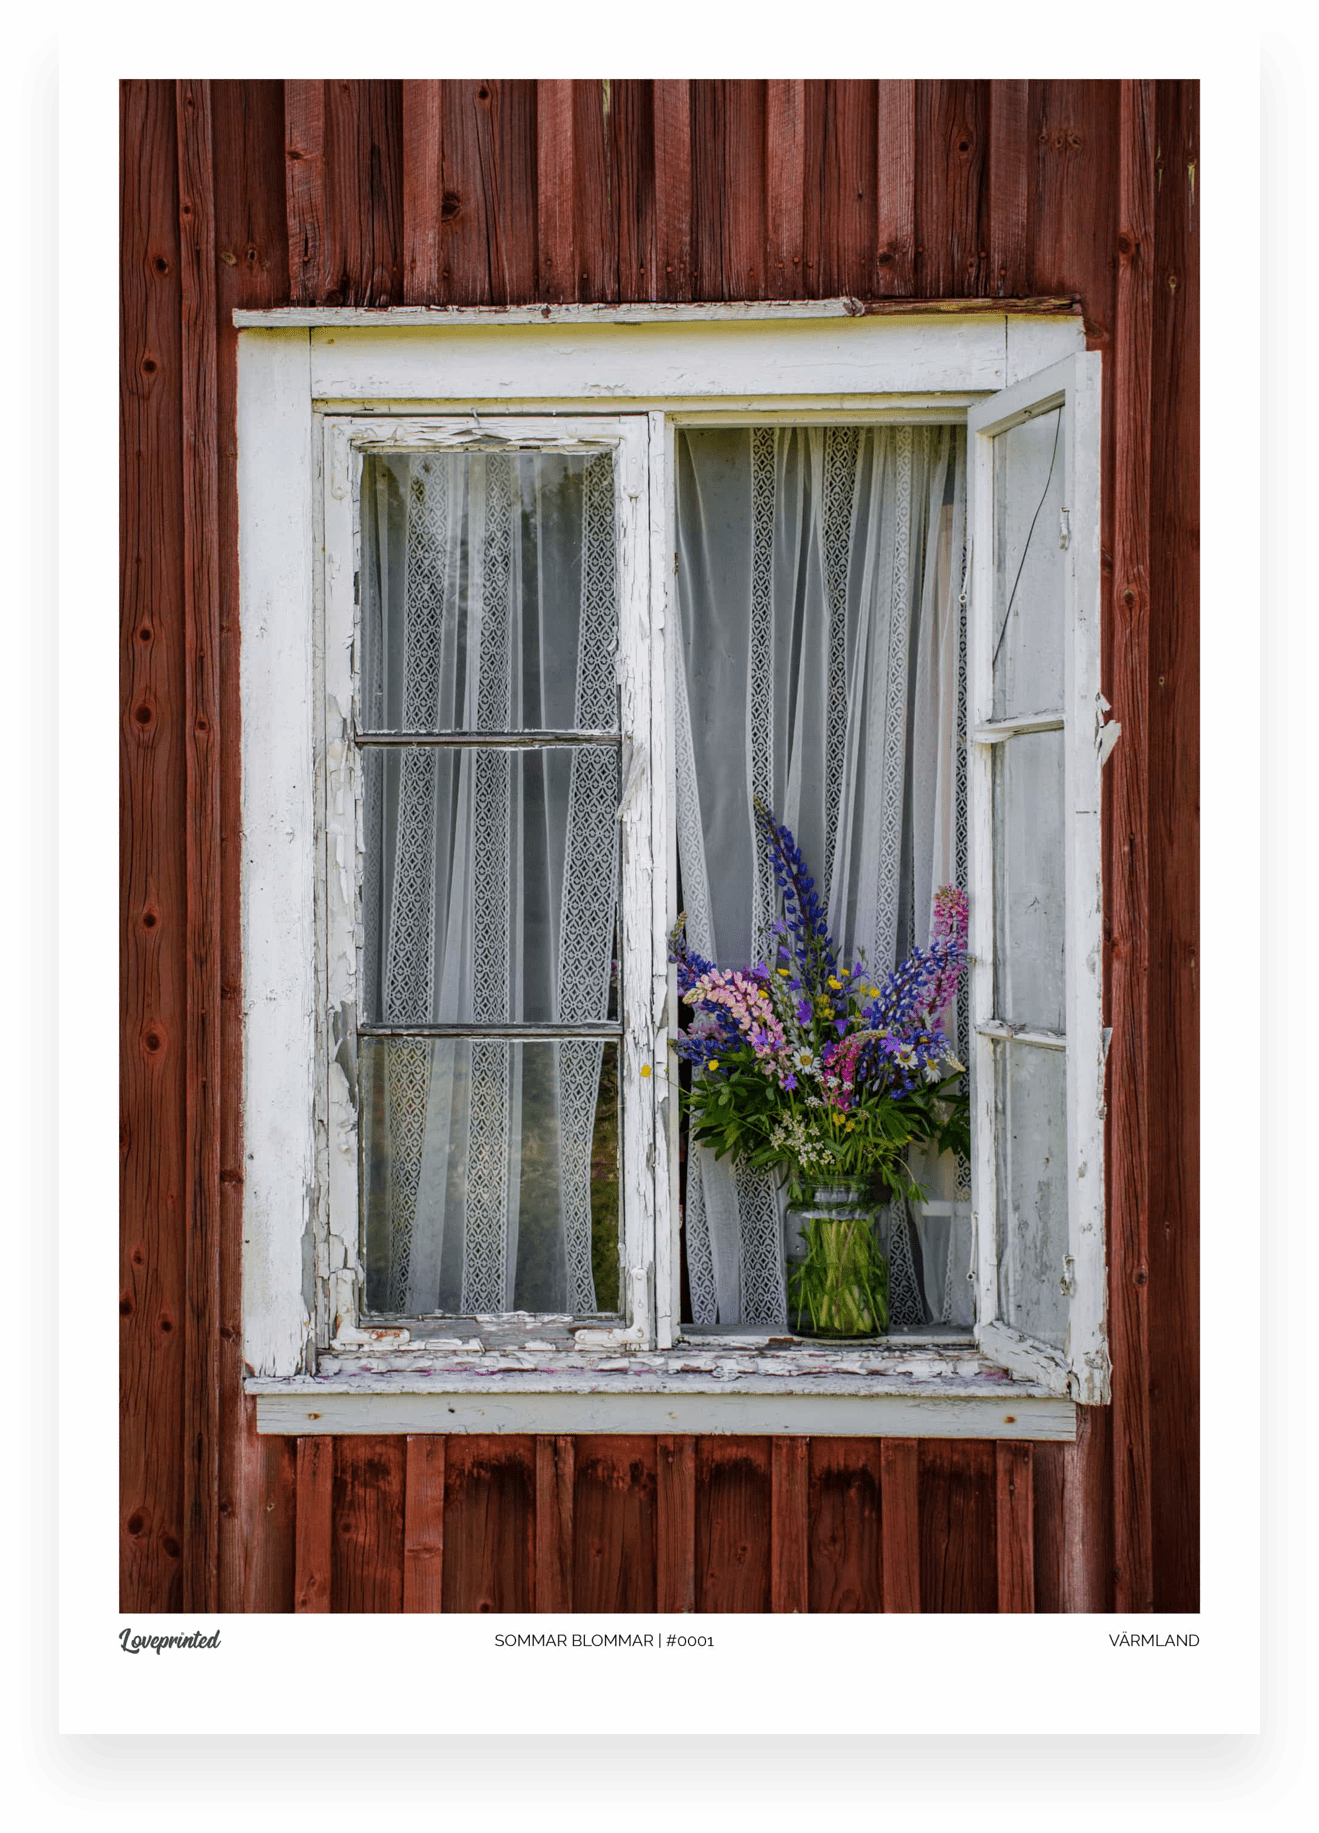 Sommar blommar | A closeup image of an old window with a bouquet of summer flowers in the windowsill in Sweden made by Loveprinted